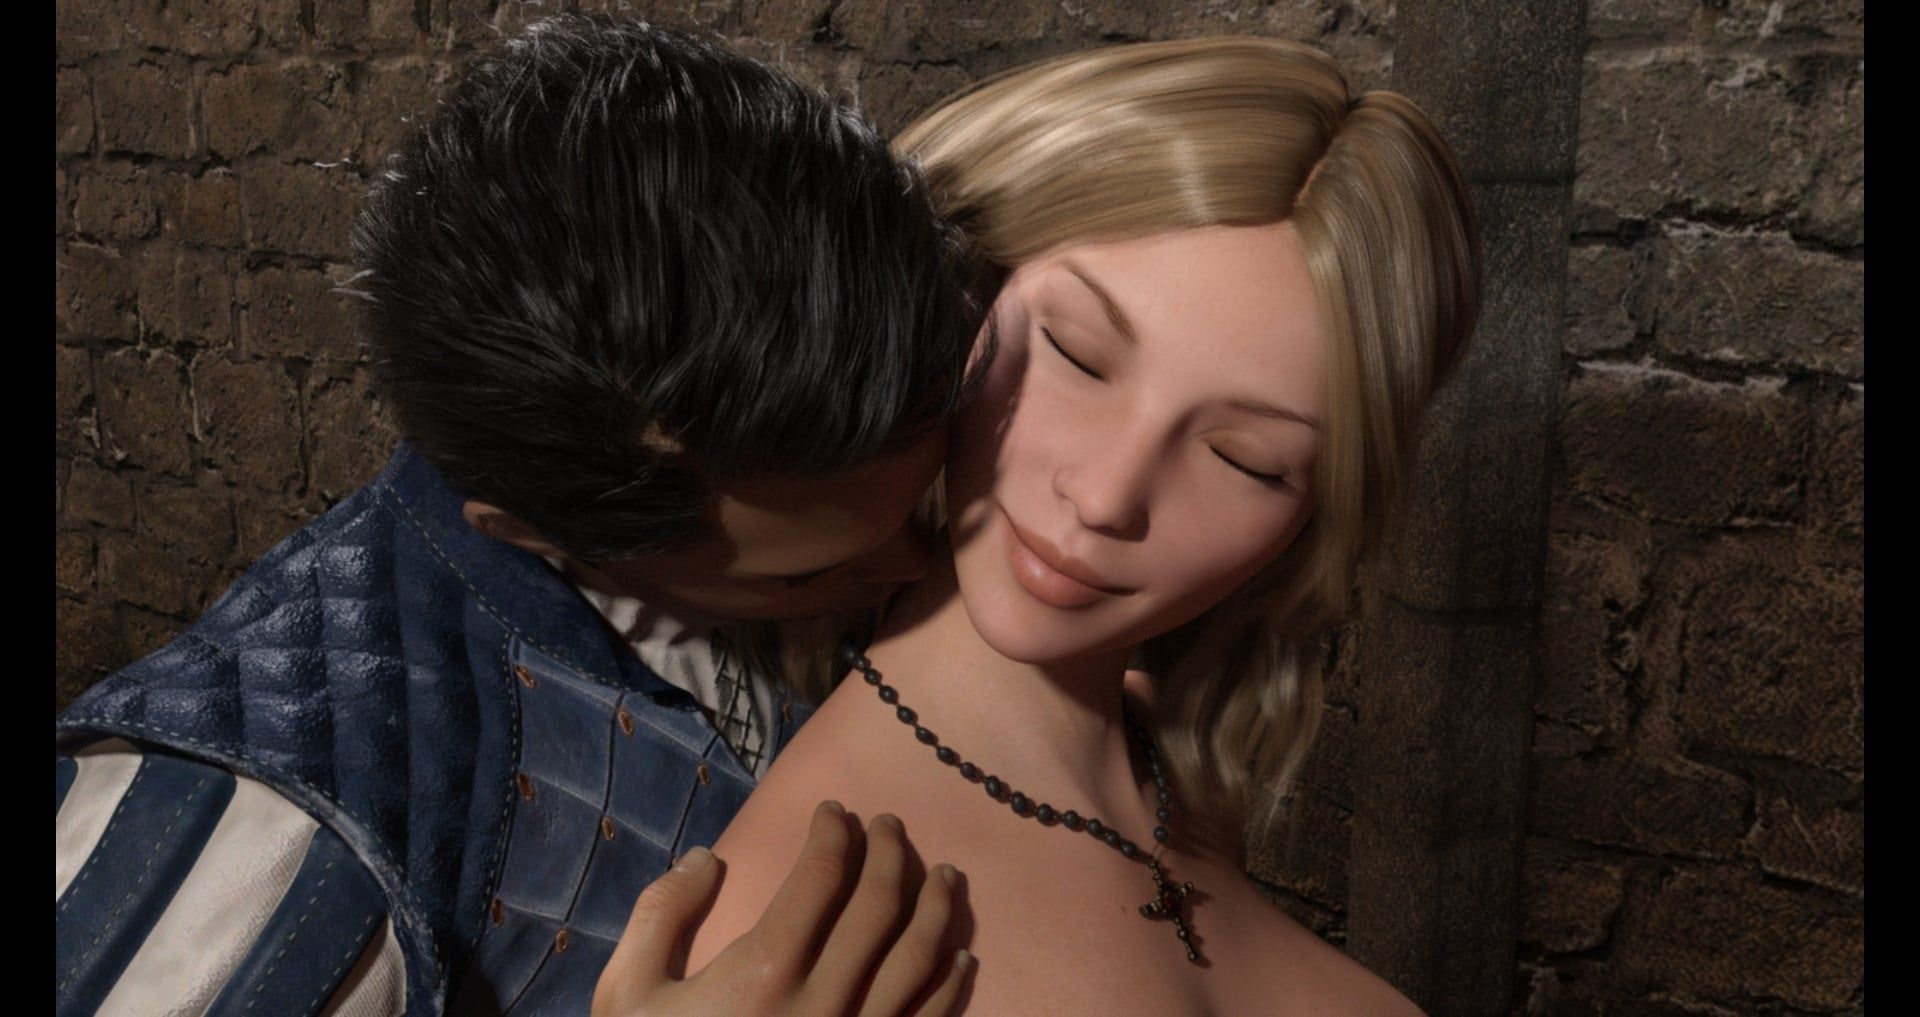 A knight's tale – Version 0.3 - Free family erotic PC game 1